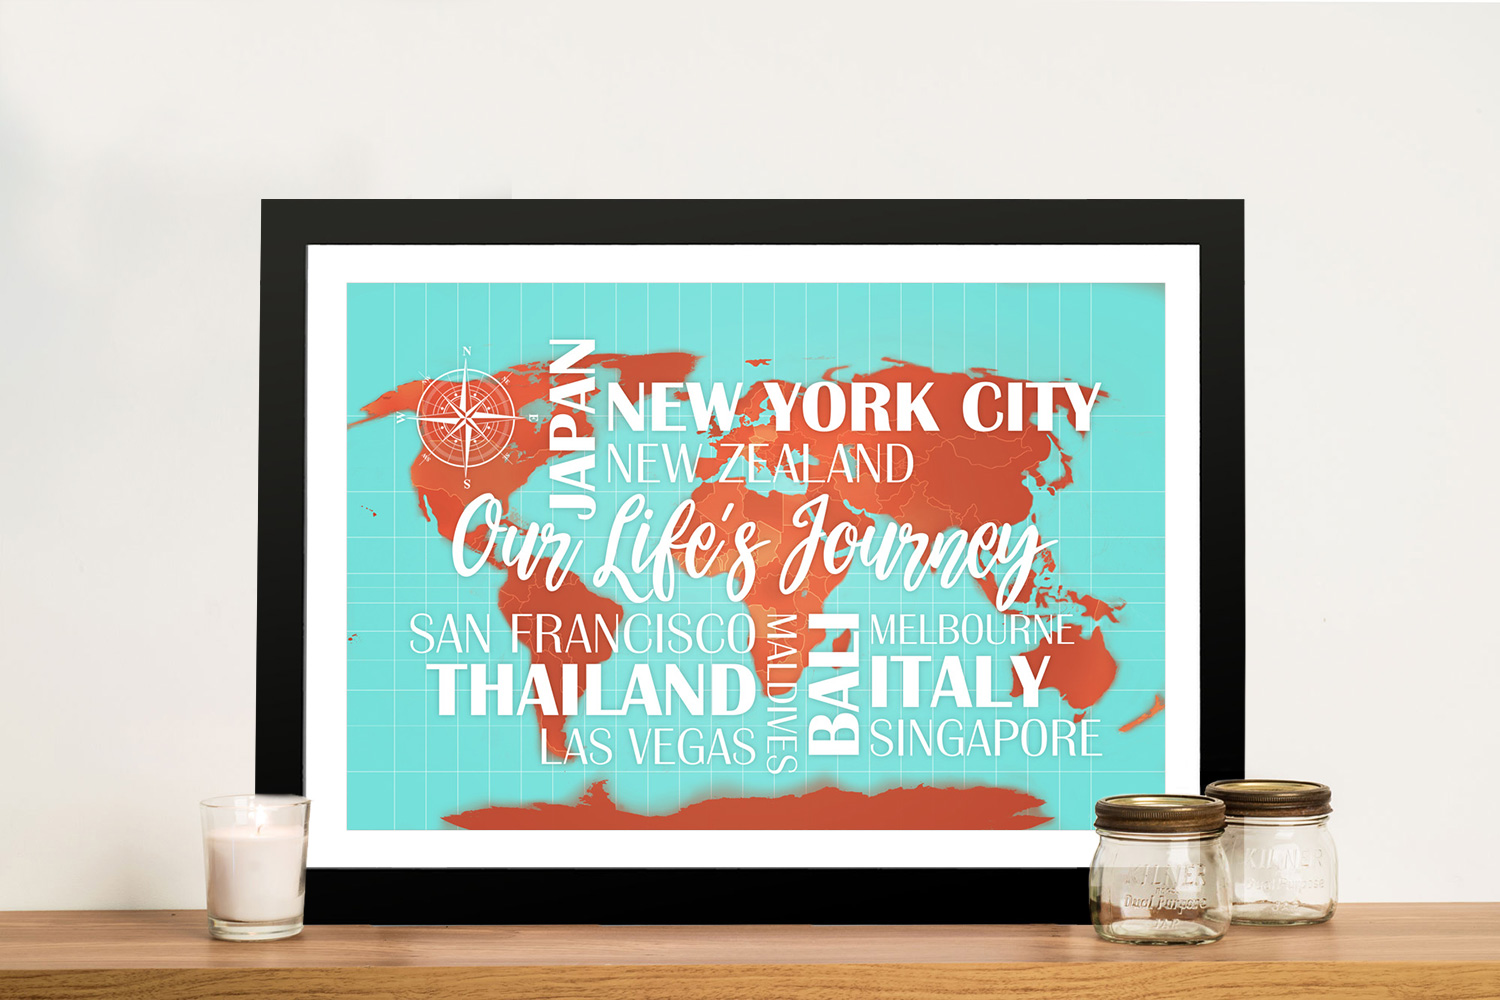 Personalised Push Pinboard Turquoise and Orange Travel Map | Turquoise and Orange Map with Words